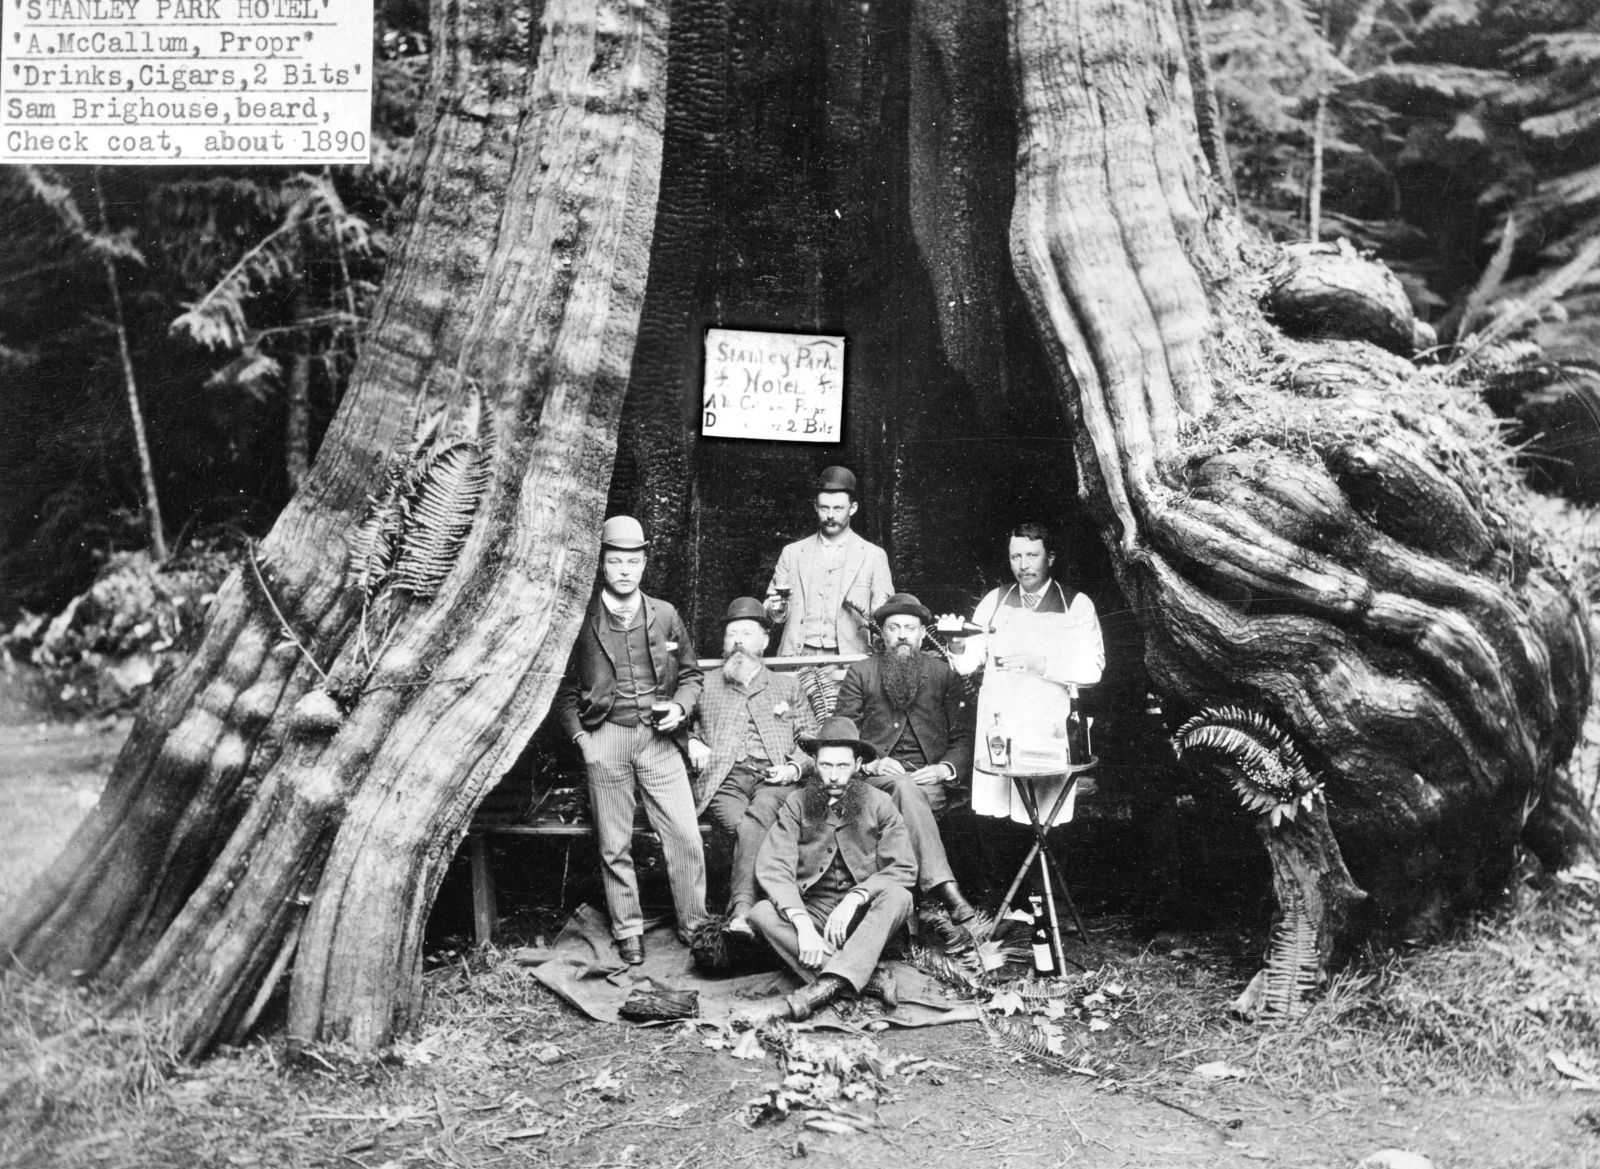 The Hollow Tree In Stanley Park, BC